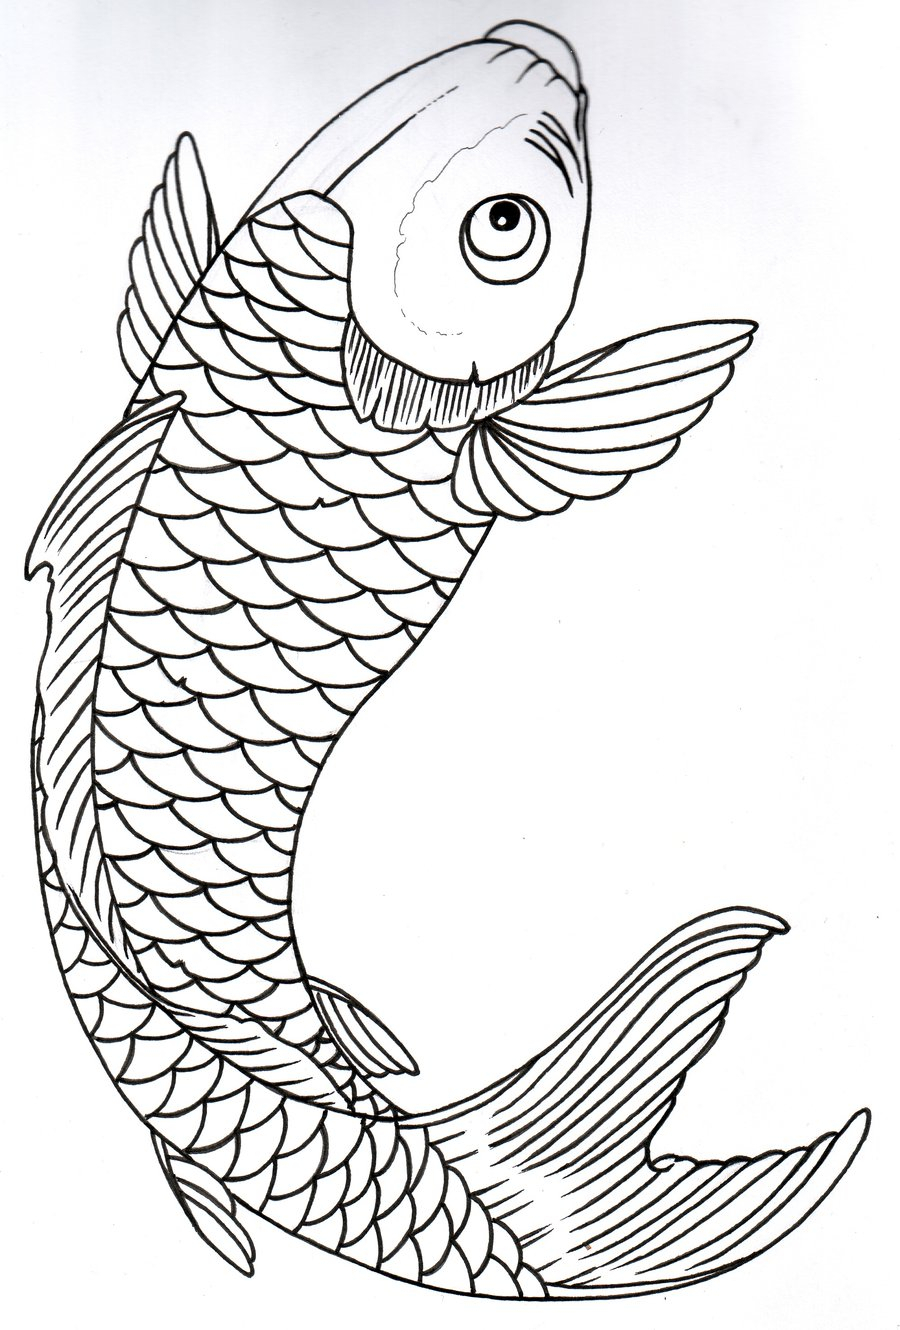 900x1330 Black And White Koi Fish Drawings Drawn Outline